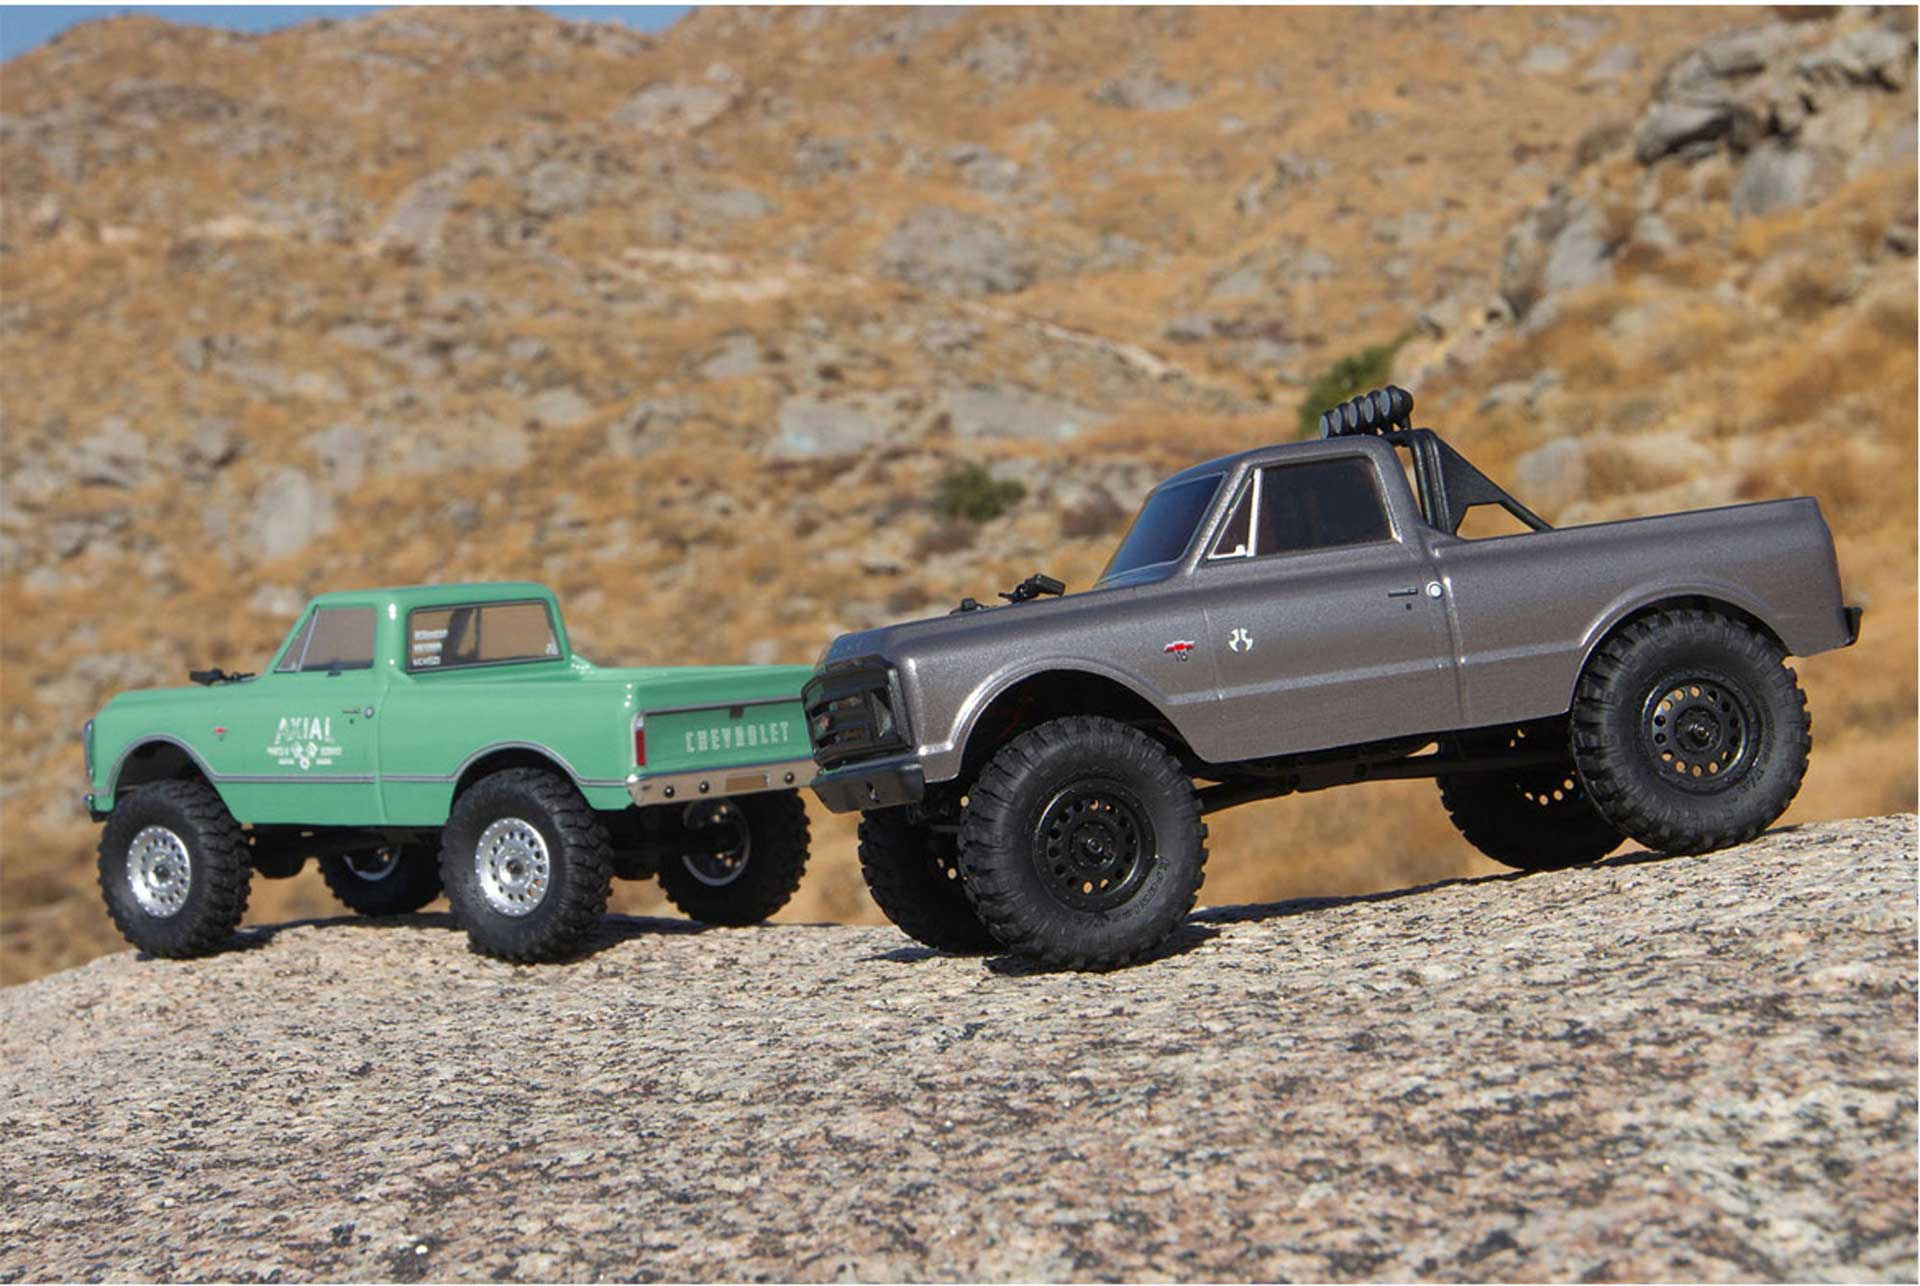 AXIAL SCX24 1967 Chevrolet C10 1/24 4WD RTR Silber